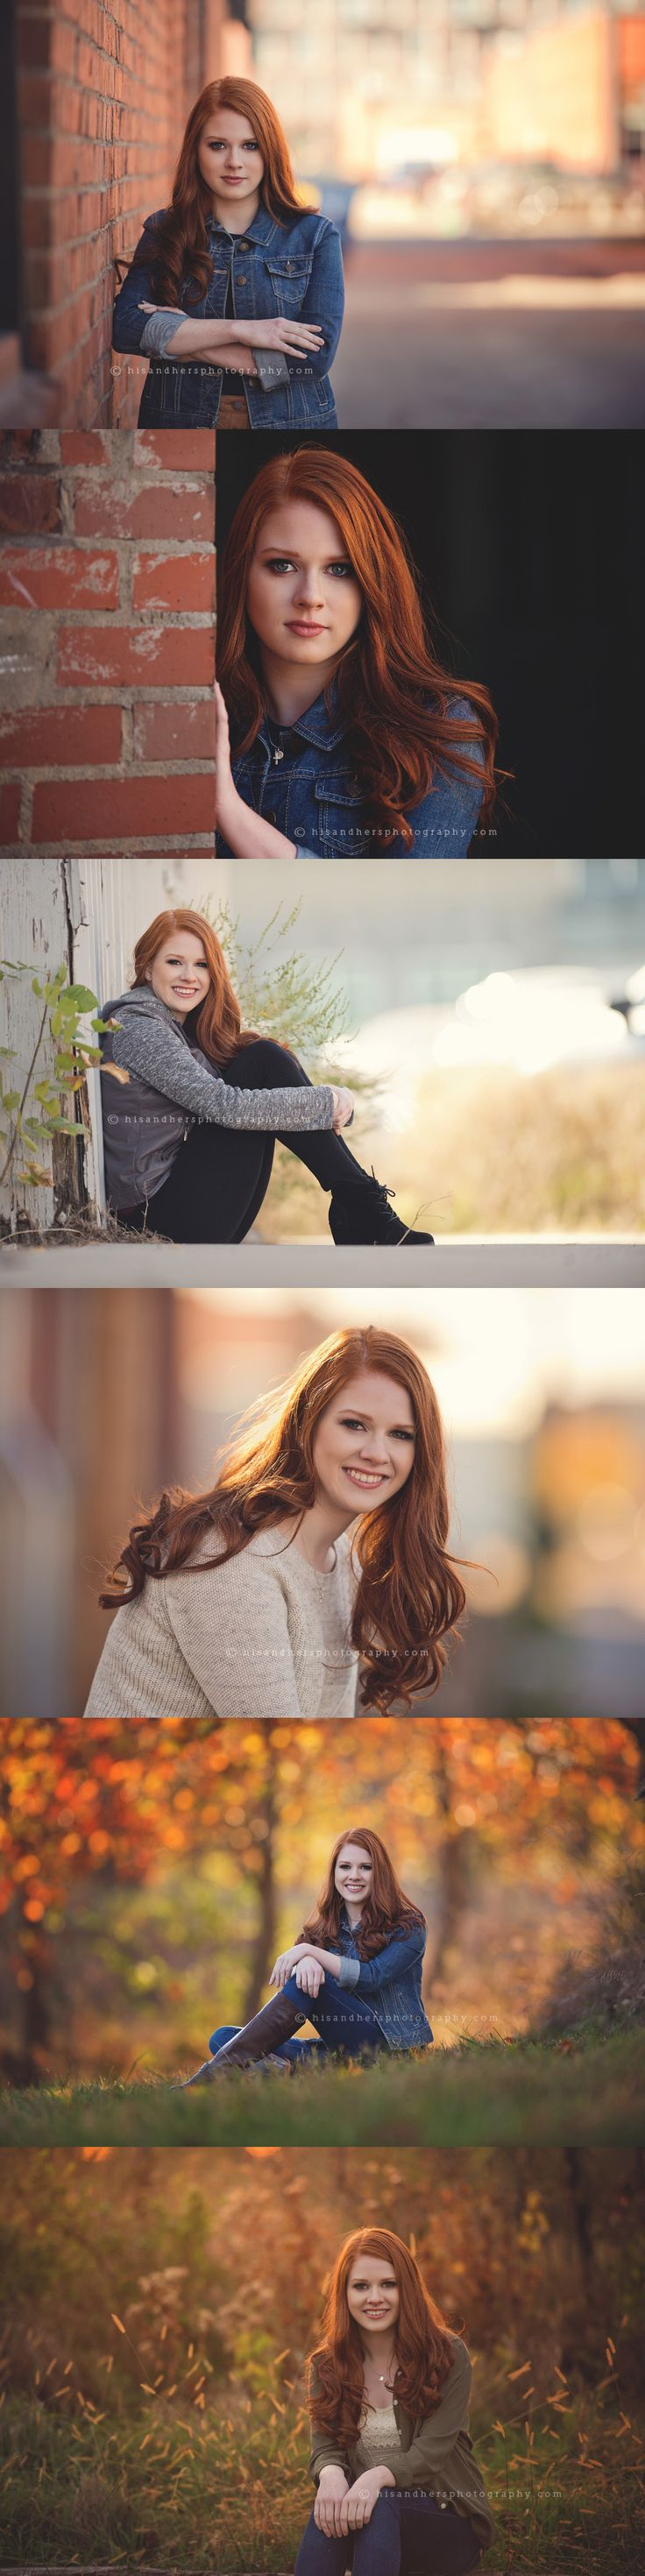 Allison, class of 2016 | Des Moines, Iowa senior portraits photographer, Randy Milder | His & Hers